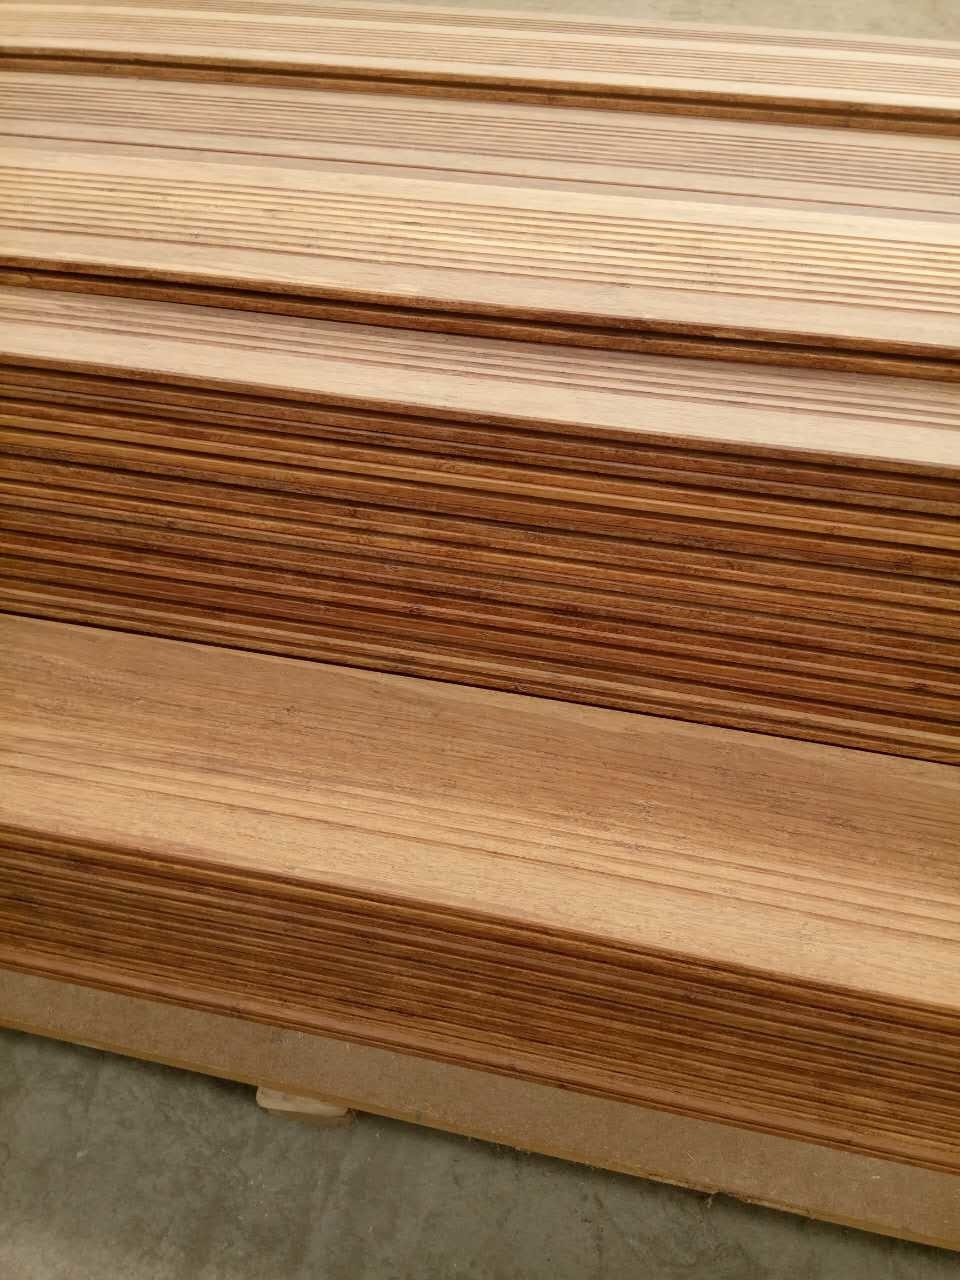 Carbonized Color Bamboo Bathroom Flooring